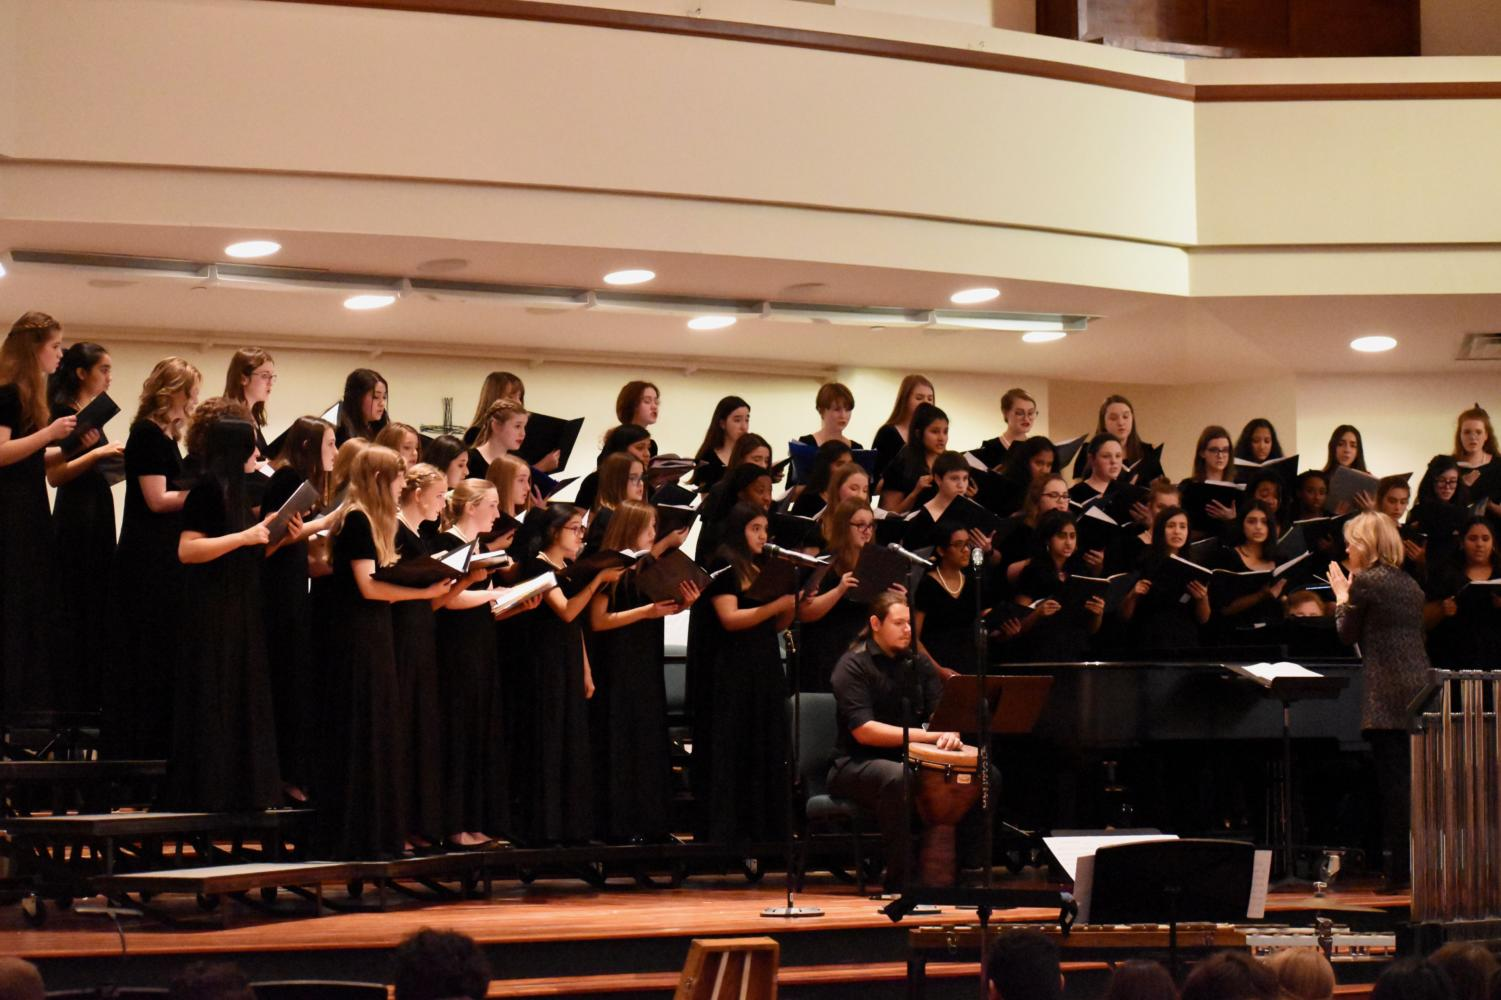 """The TMEA Region 31 Treble choir performs a piece called """"The Composition of a Kiss"""" by Padworski during the 2019 All Region Honor Choir concert on Saturday at the Grapevine First United Methodist Church. Parents and friends come to watch and enjoy an evening full of a variety of music sung by each choir."""